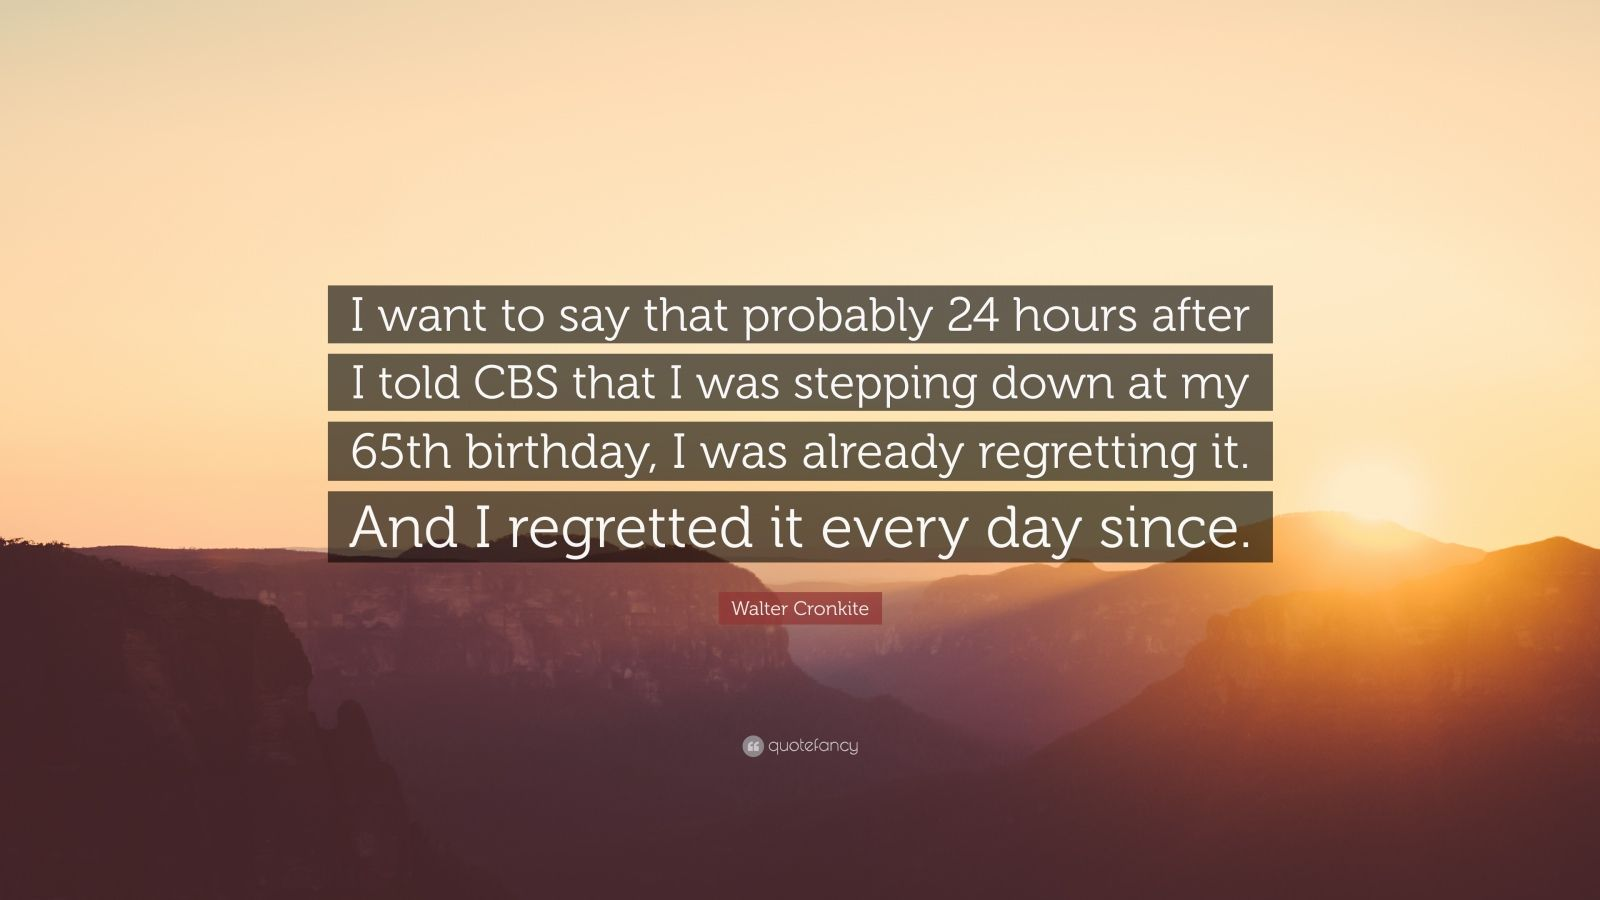 """Walter Cronkite Quote: """"I want to say that probably 24 hours after I told CBS that I was stepping down at my 65th birthday, I was already regretting it. And I regretted it every day since."""""""